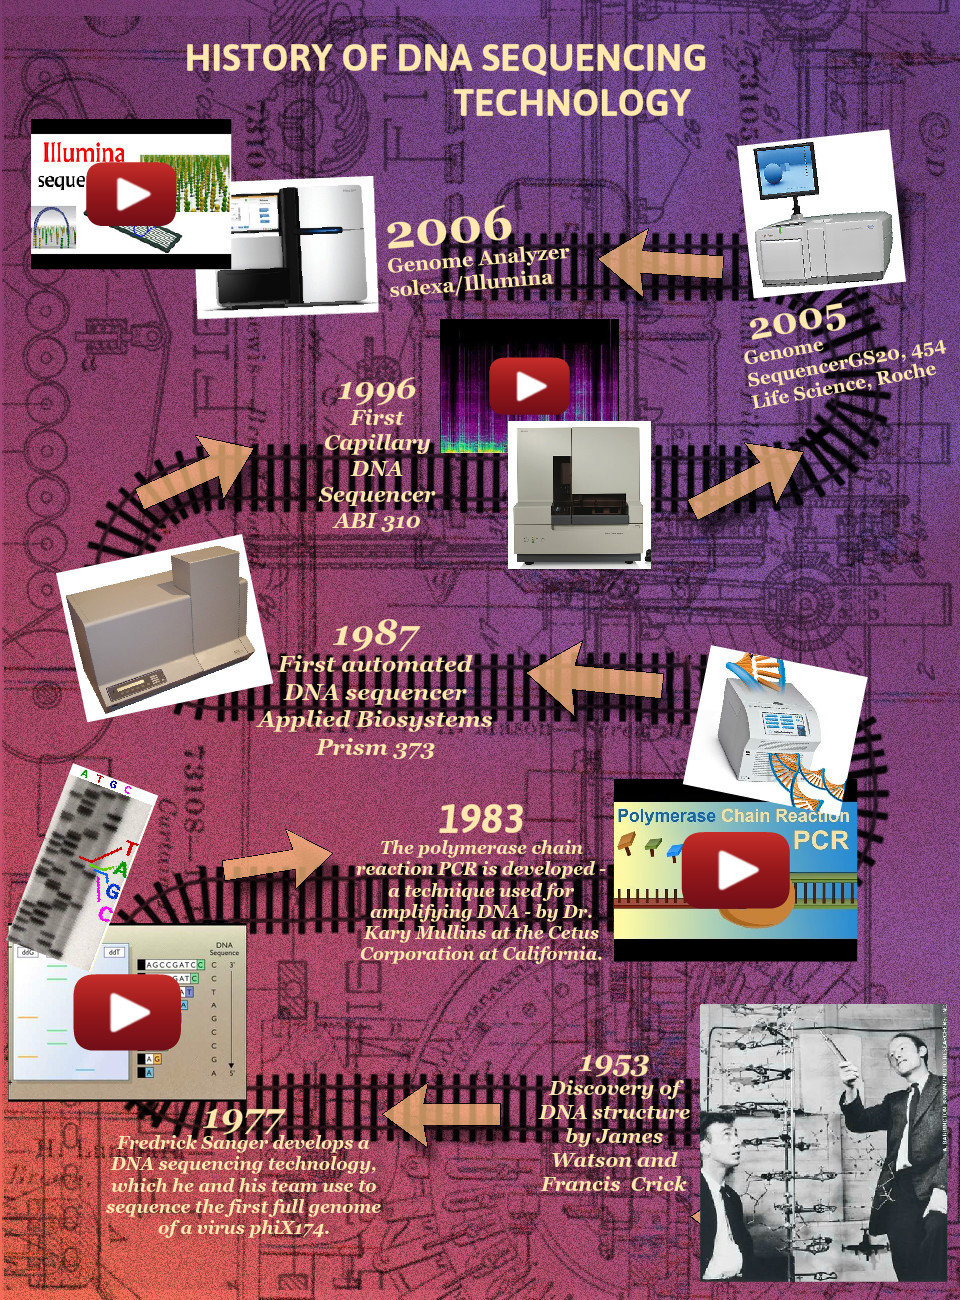 History of DNA Sequencing Technology